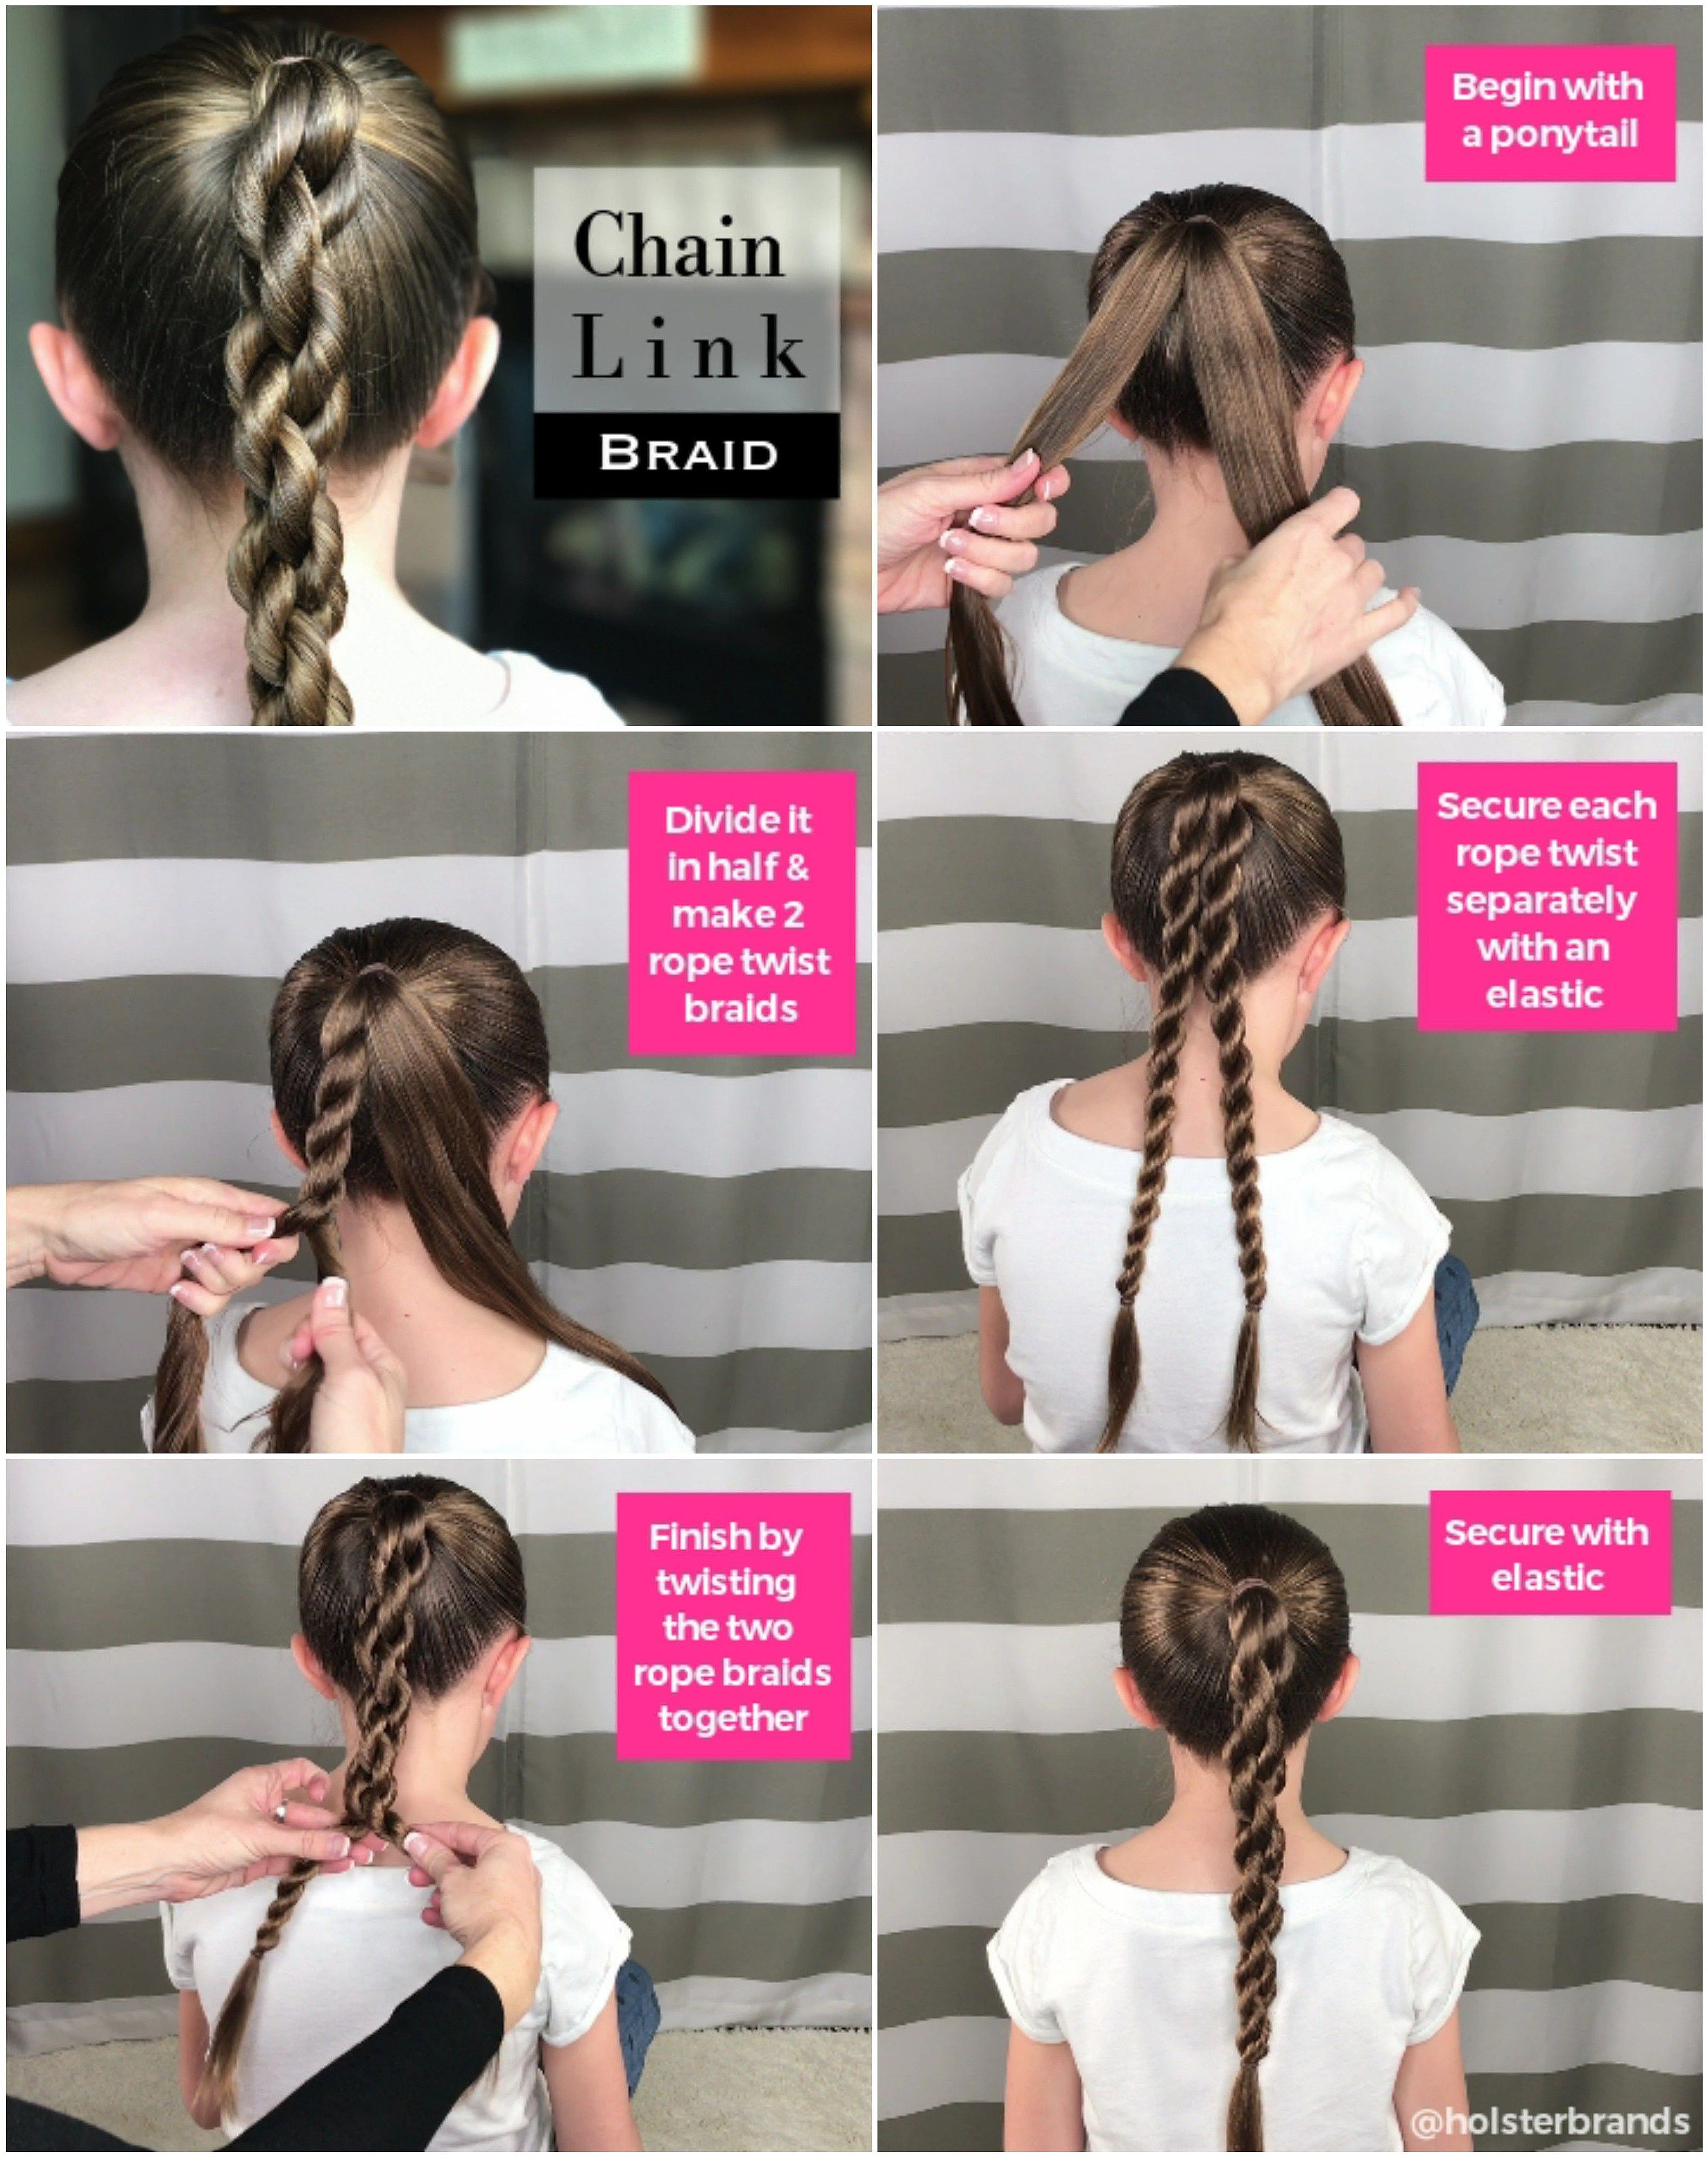 Chain link braid how to quickbraid quickbraidedhairstyle click for